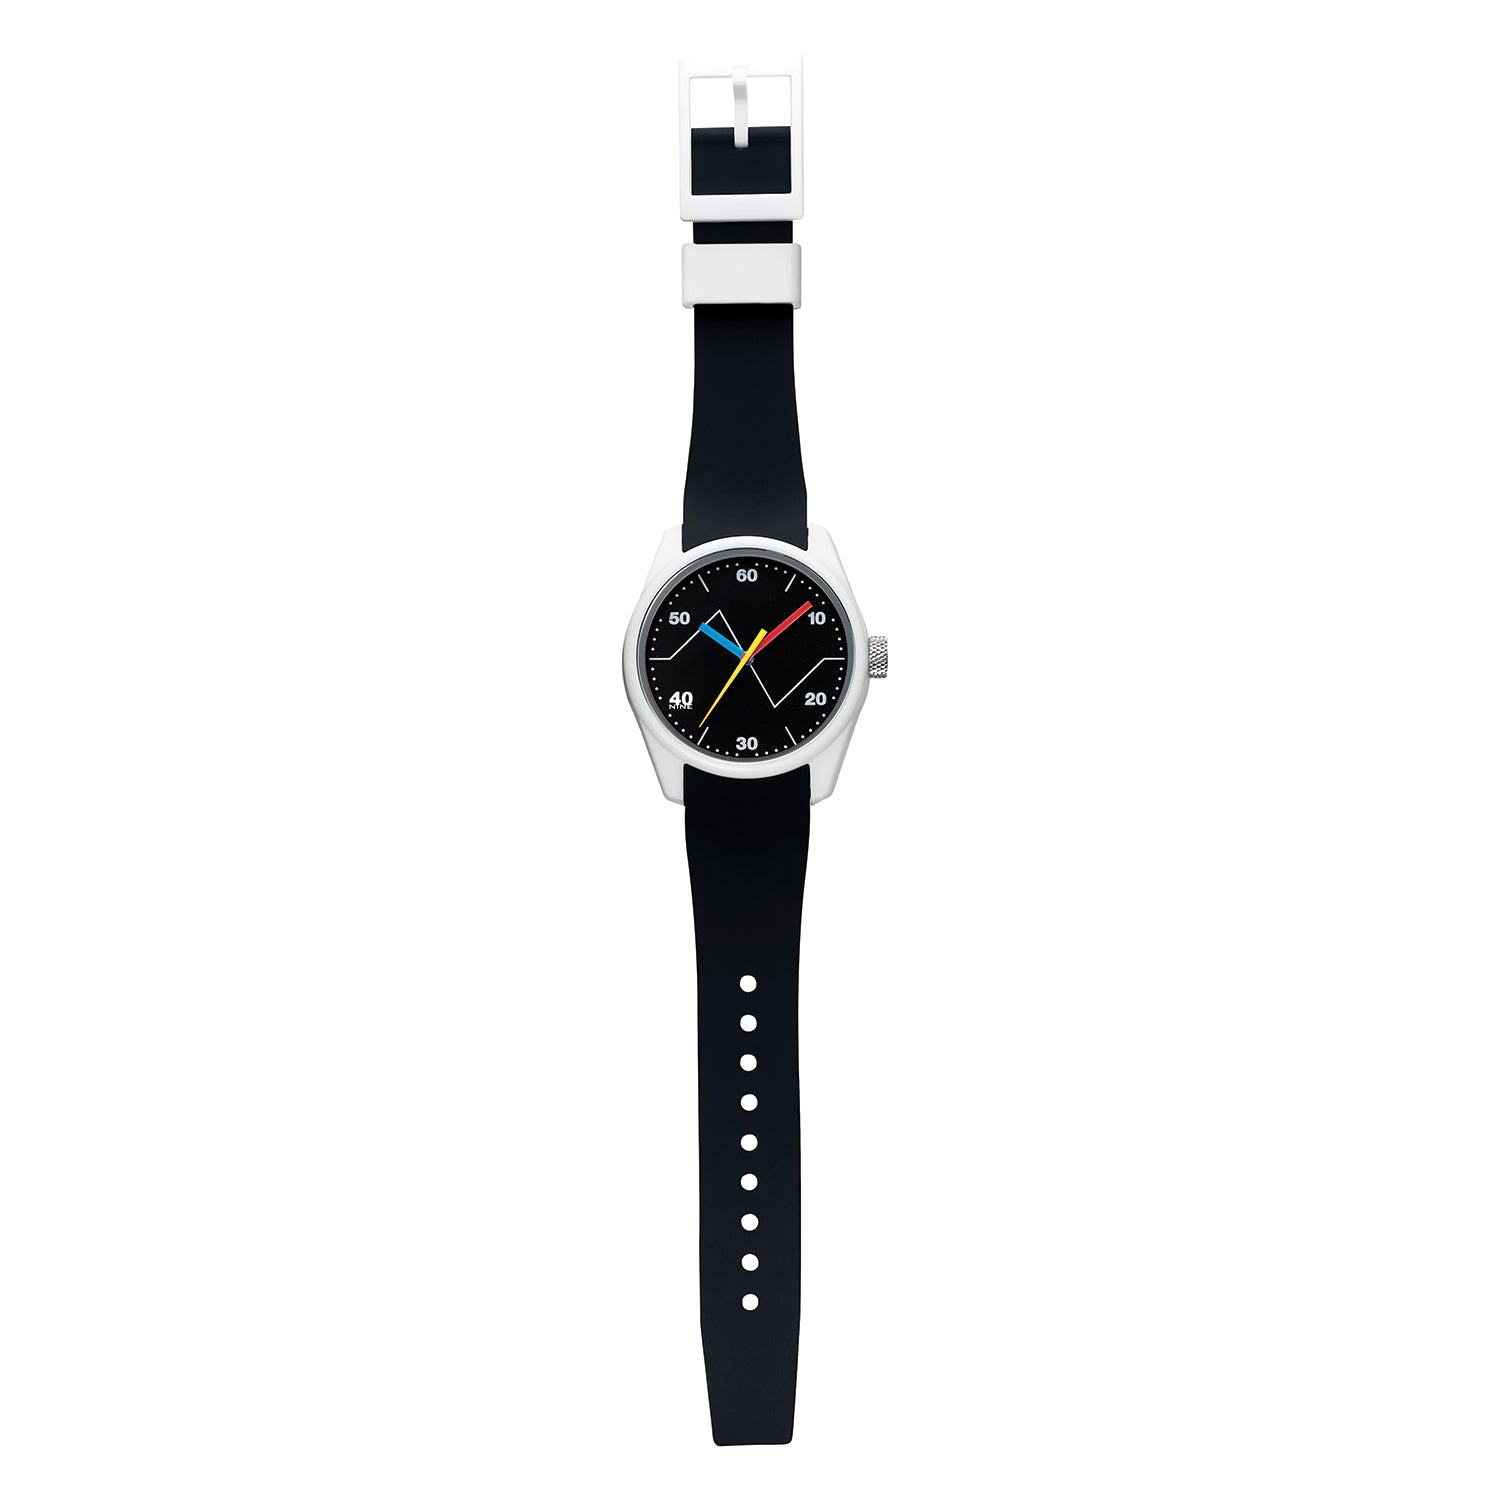 40N4.7BK 40NINE FLUCTUATION 43MM WATCH